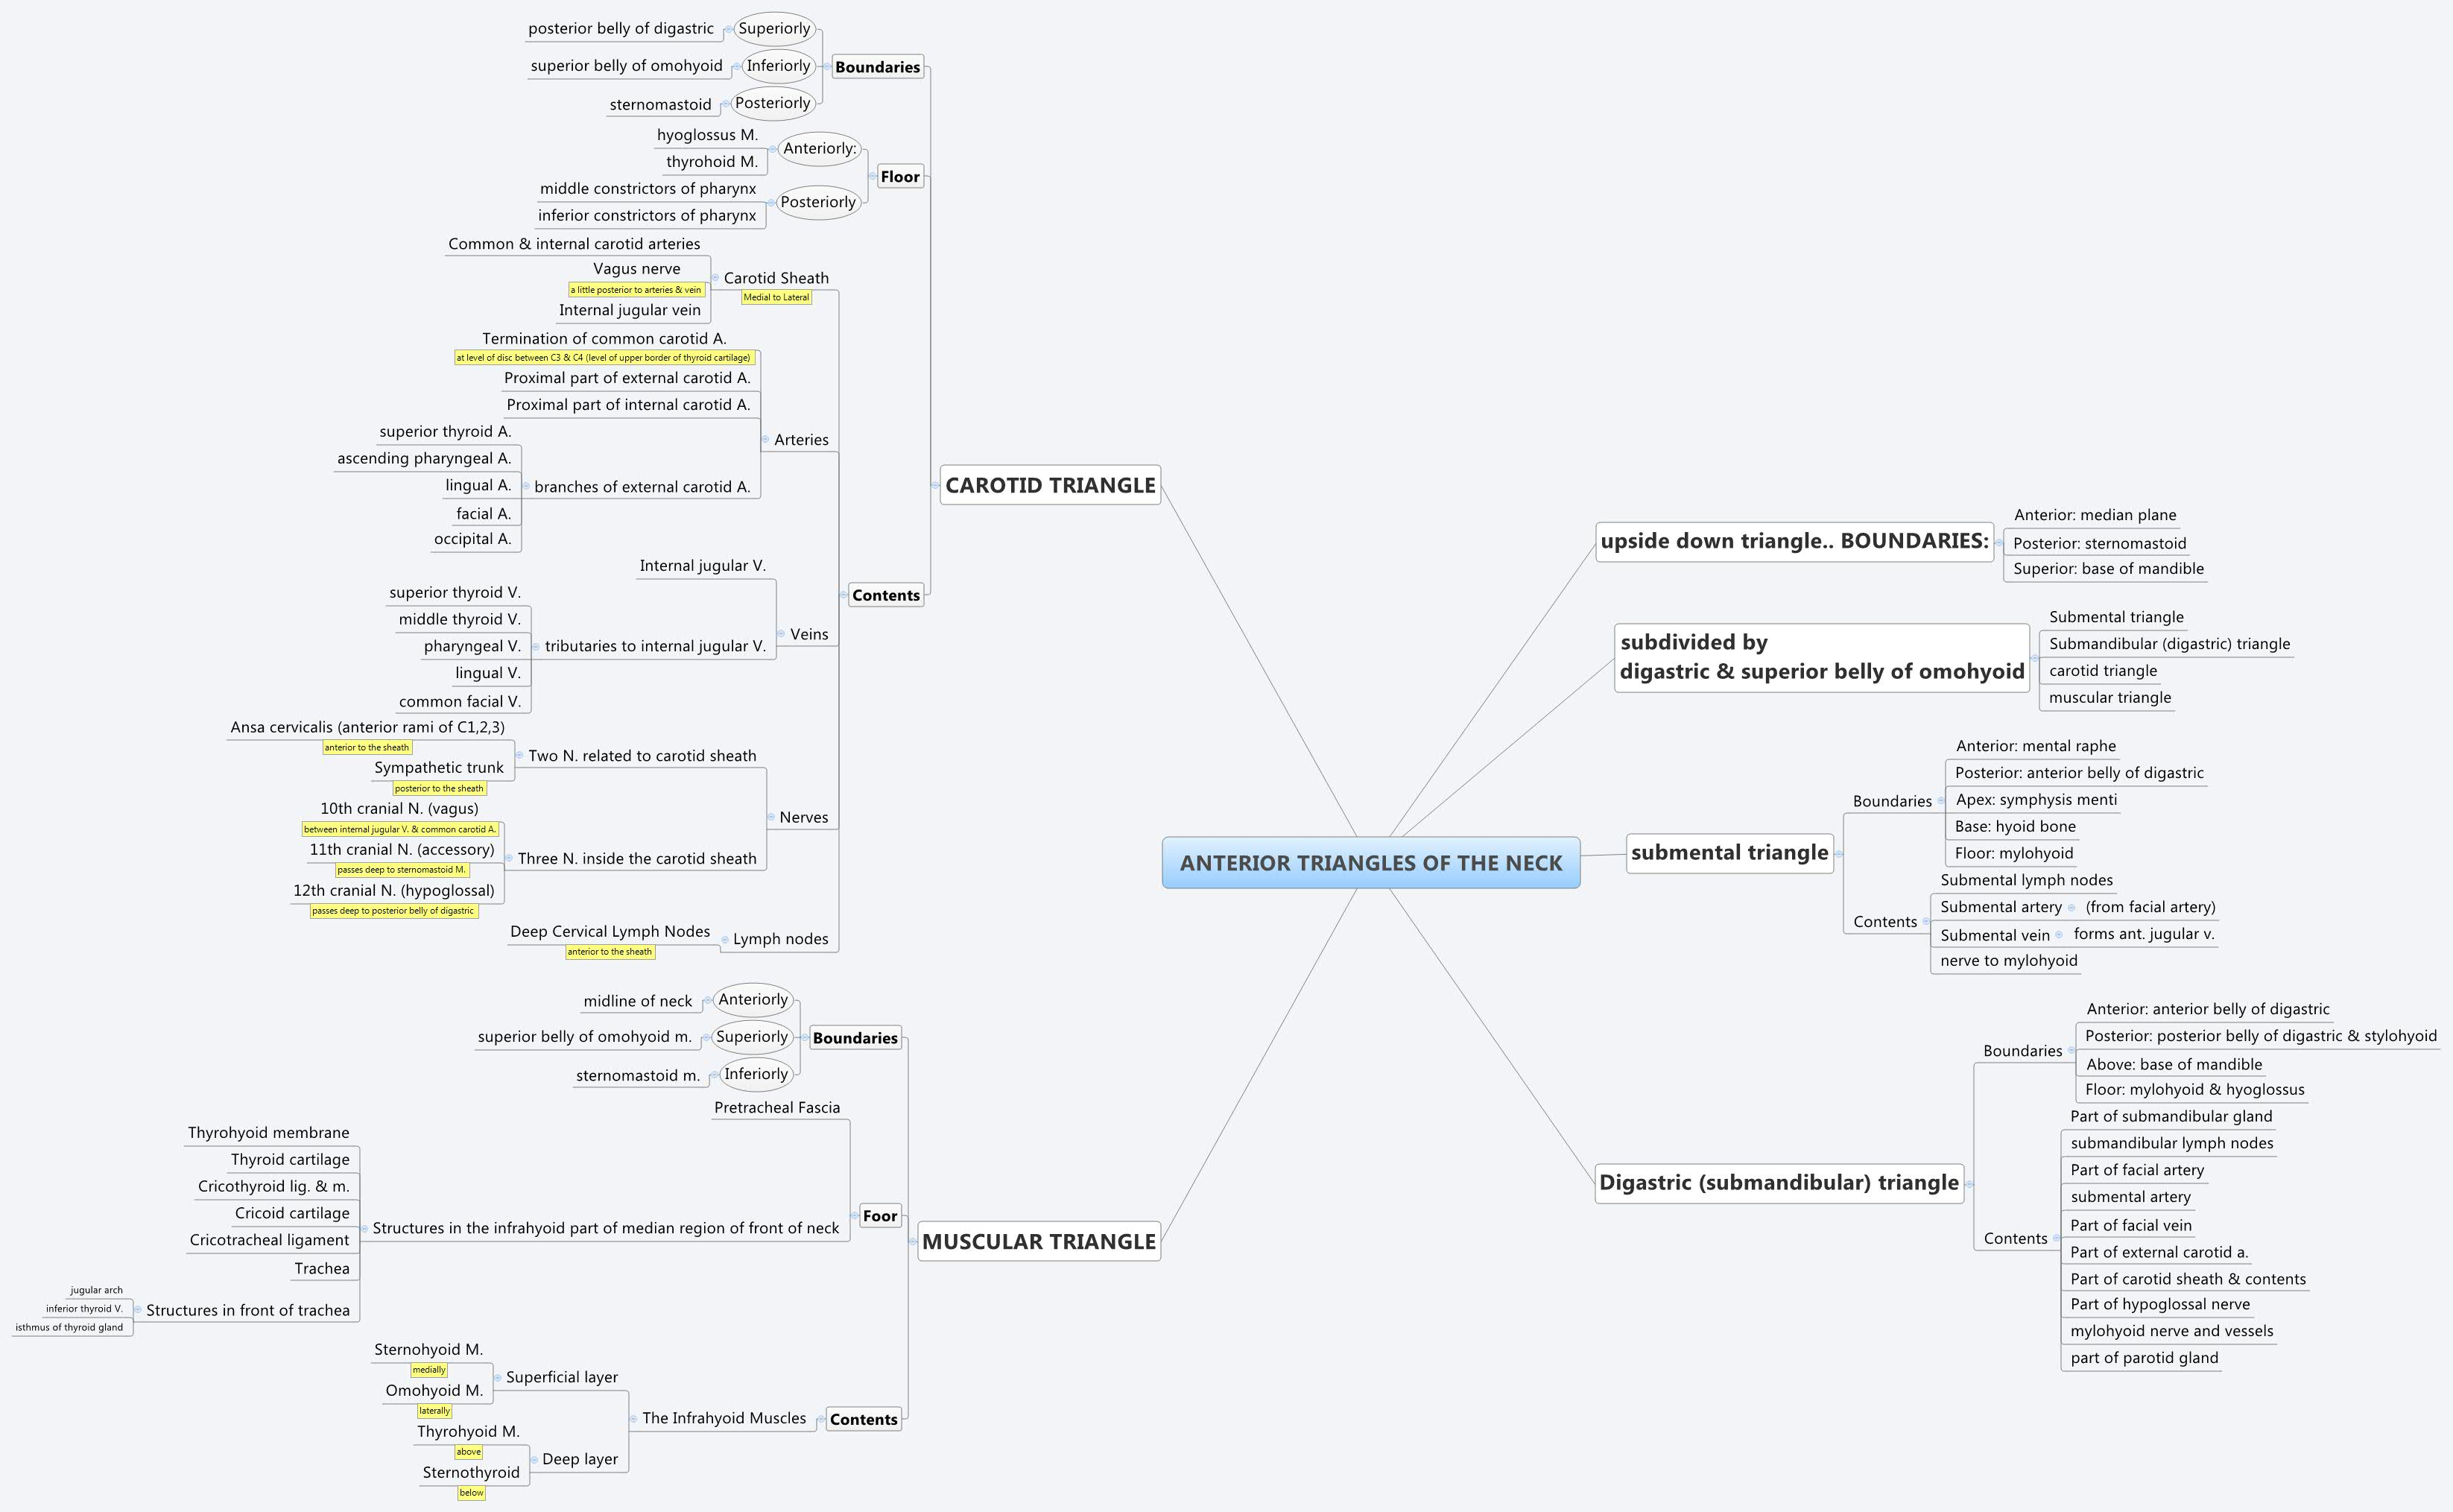 mind_maps - download_center > Archive > 2nd > 428 > Term_1 > Anatomy ...